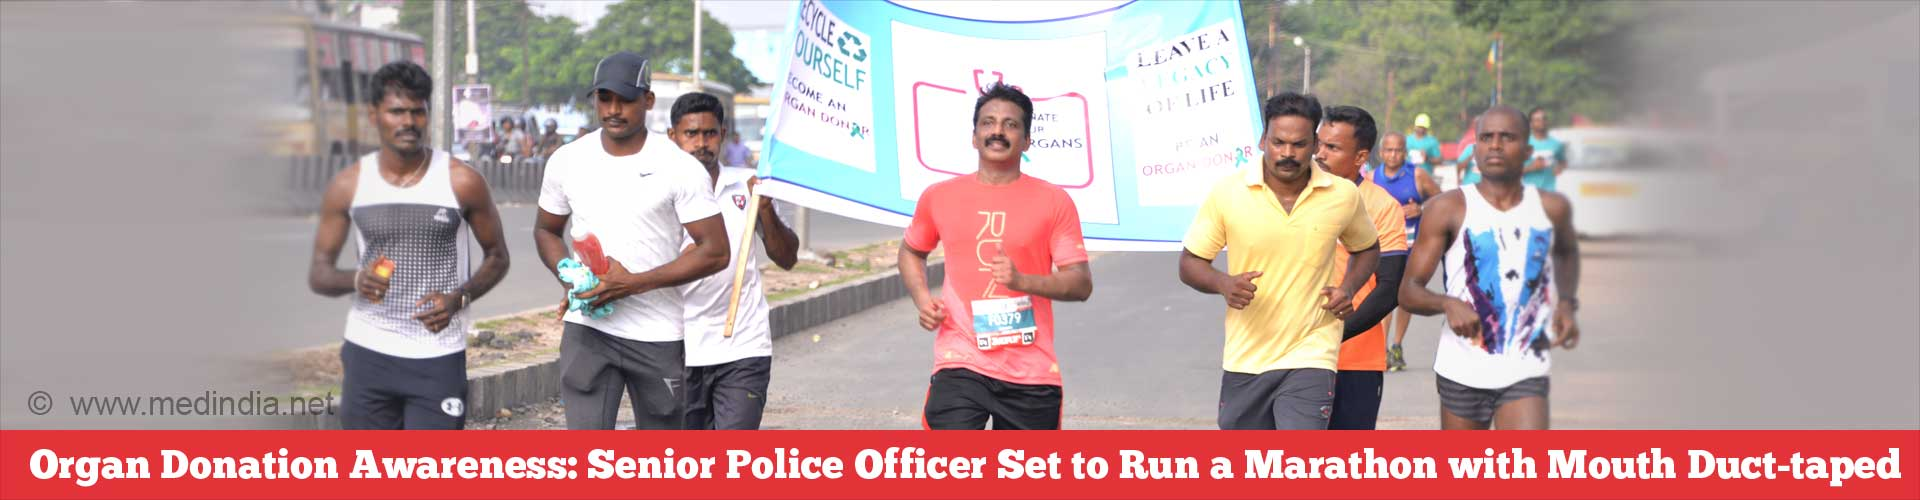 Q & A: Senior Police Officer Set to Run a Marathon With Mouth Duct-taped to Spread Awareness on Organ Donation